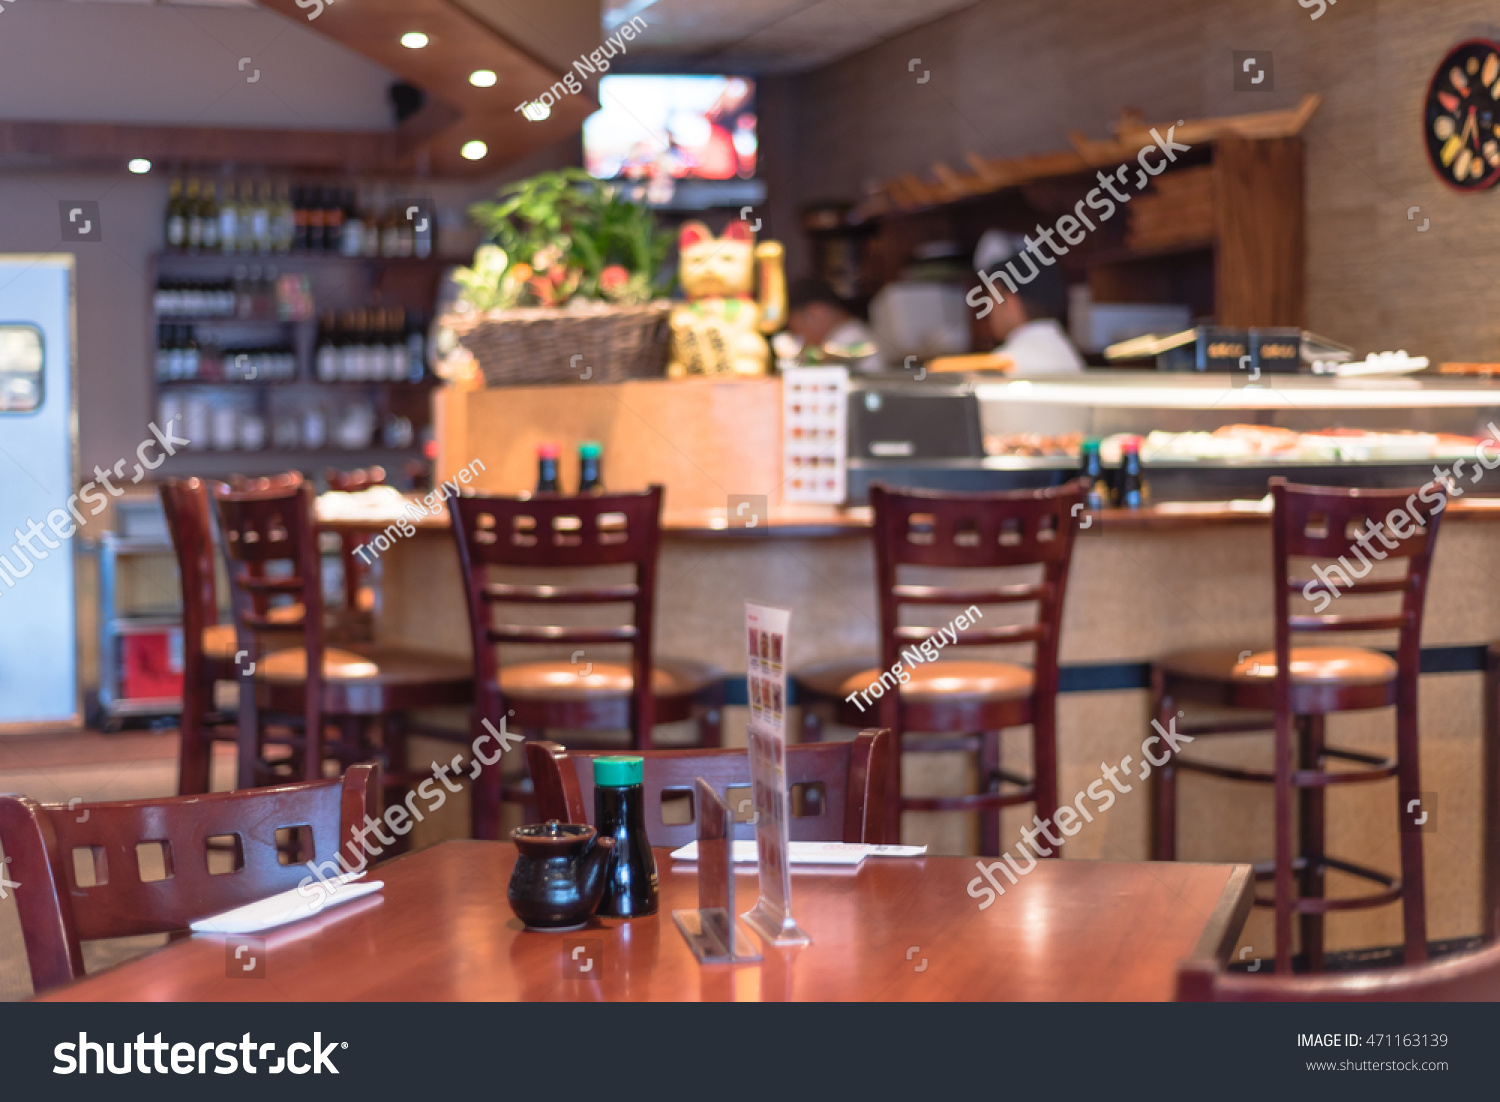 Genial Abstract Blurred Japanese Restaurant Interior In Houston, Texas, US With  Empty Table Sets And